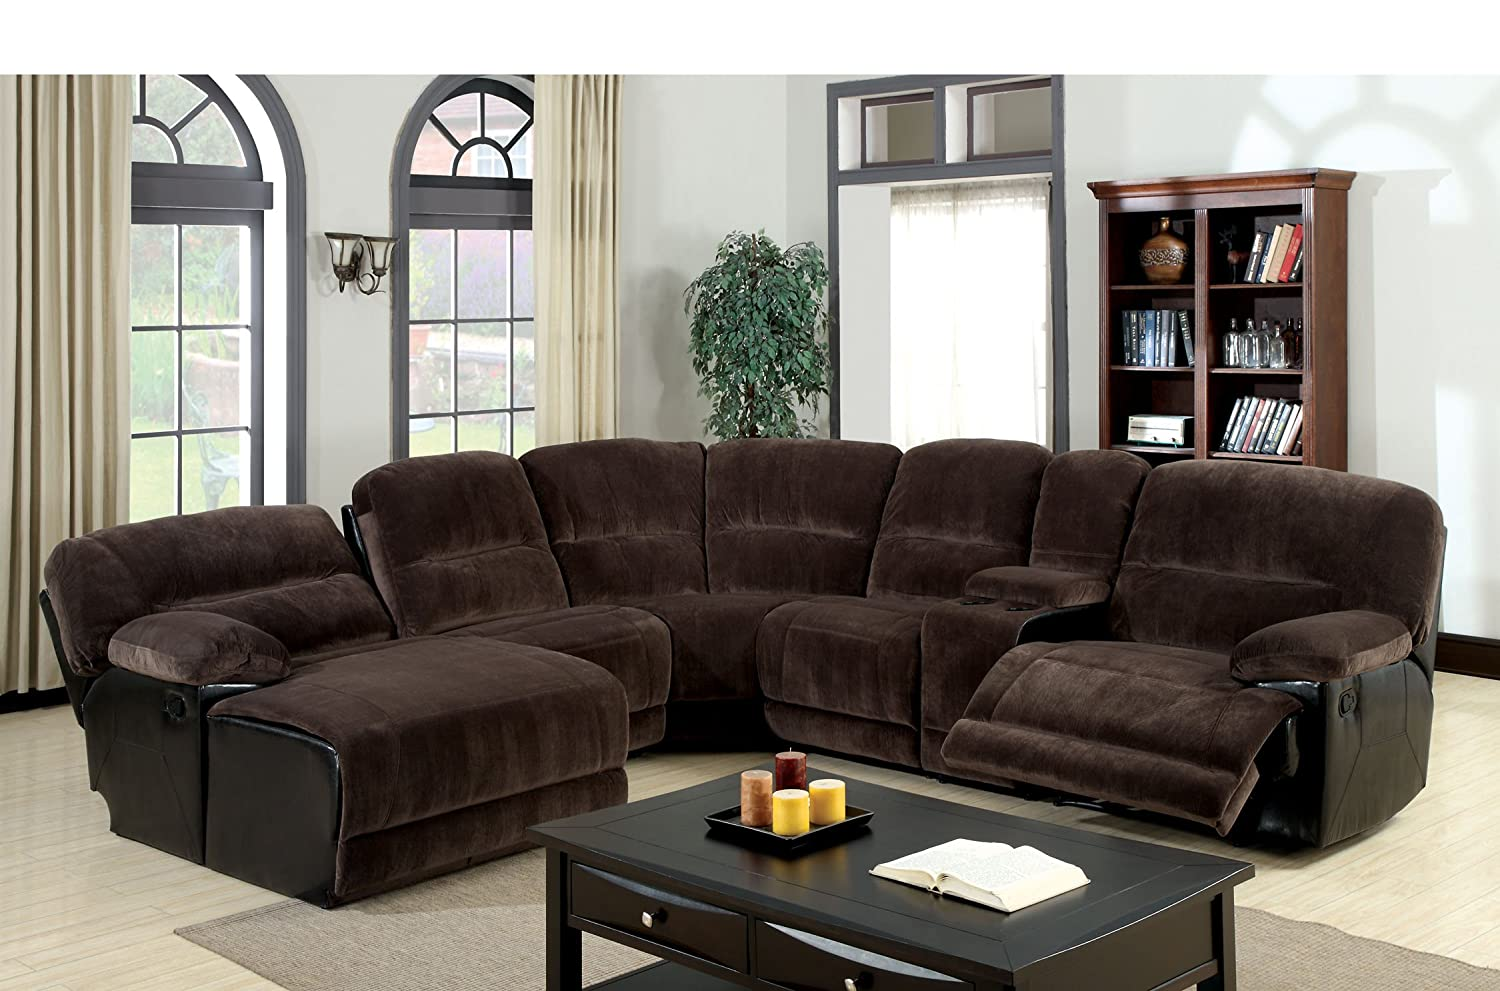 Gentil Amazon.com: Furniture Of America Ladden Elephant Skin Microfiber Sectional  Sofa With 2 Recliners, Dark Brown: Kitchen U0026 Dining